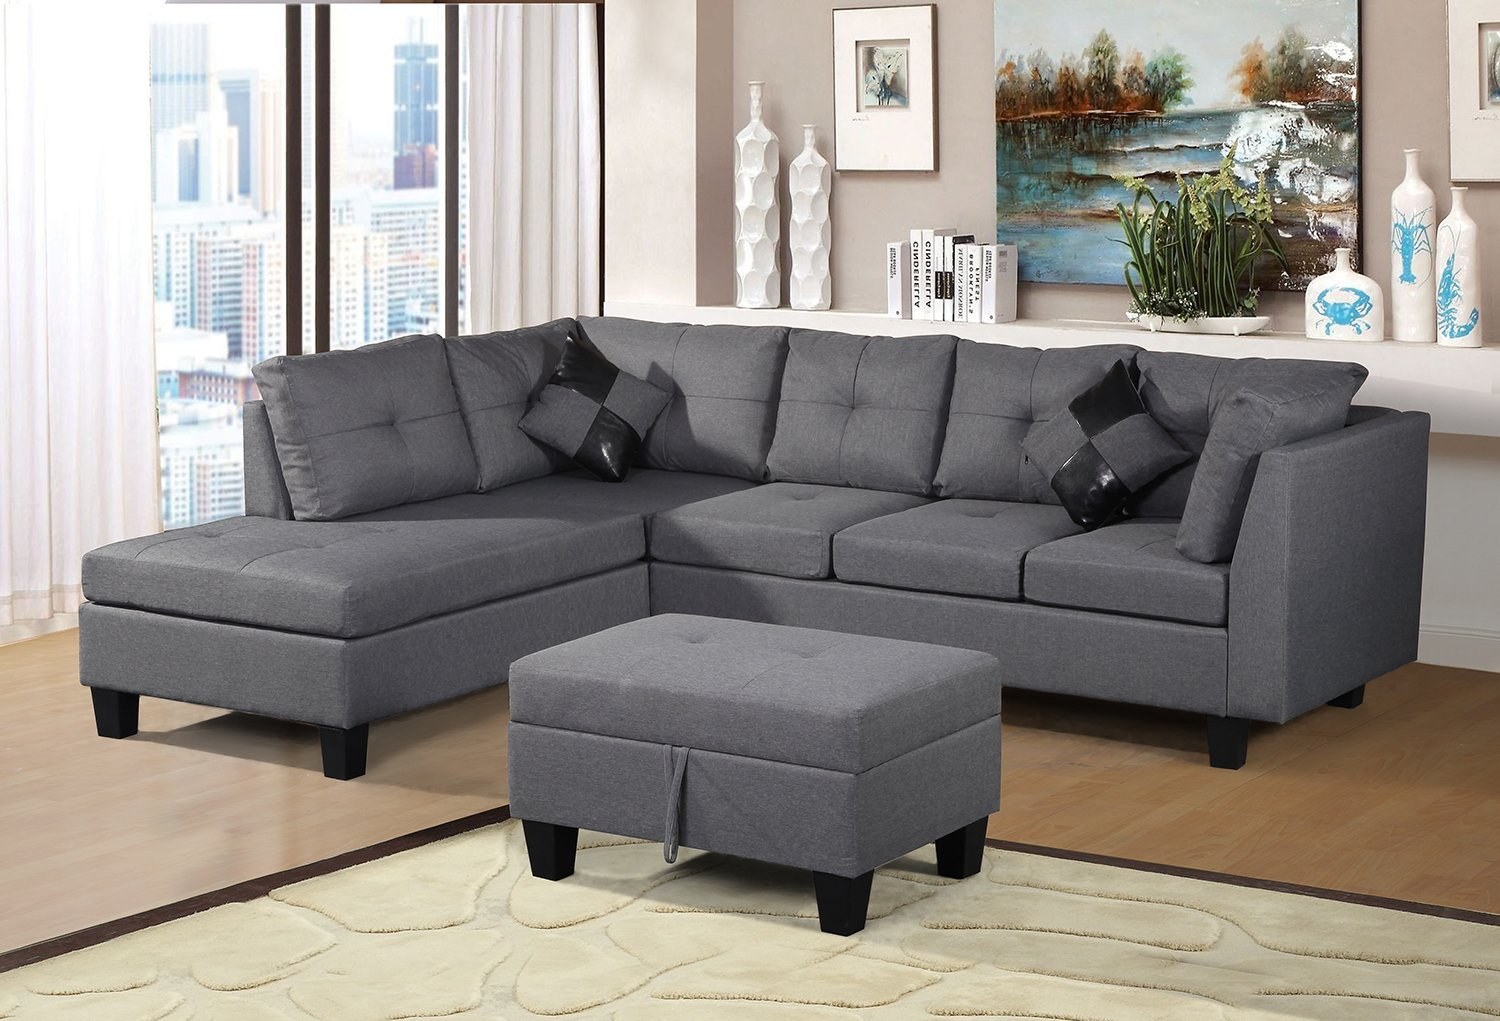 the best attitude 62571 f7569 Merax Sofa 3-Piece Sectional Sofa with Chaise Lounge/Storage Ottoman/7 Back  Cushions/2 Throw Pillows (Gray.) by Harper&Bright Designs